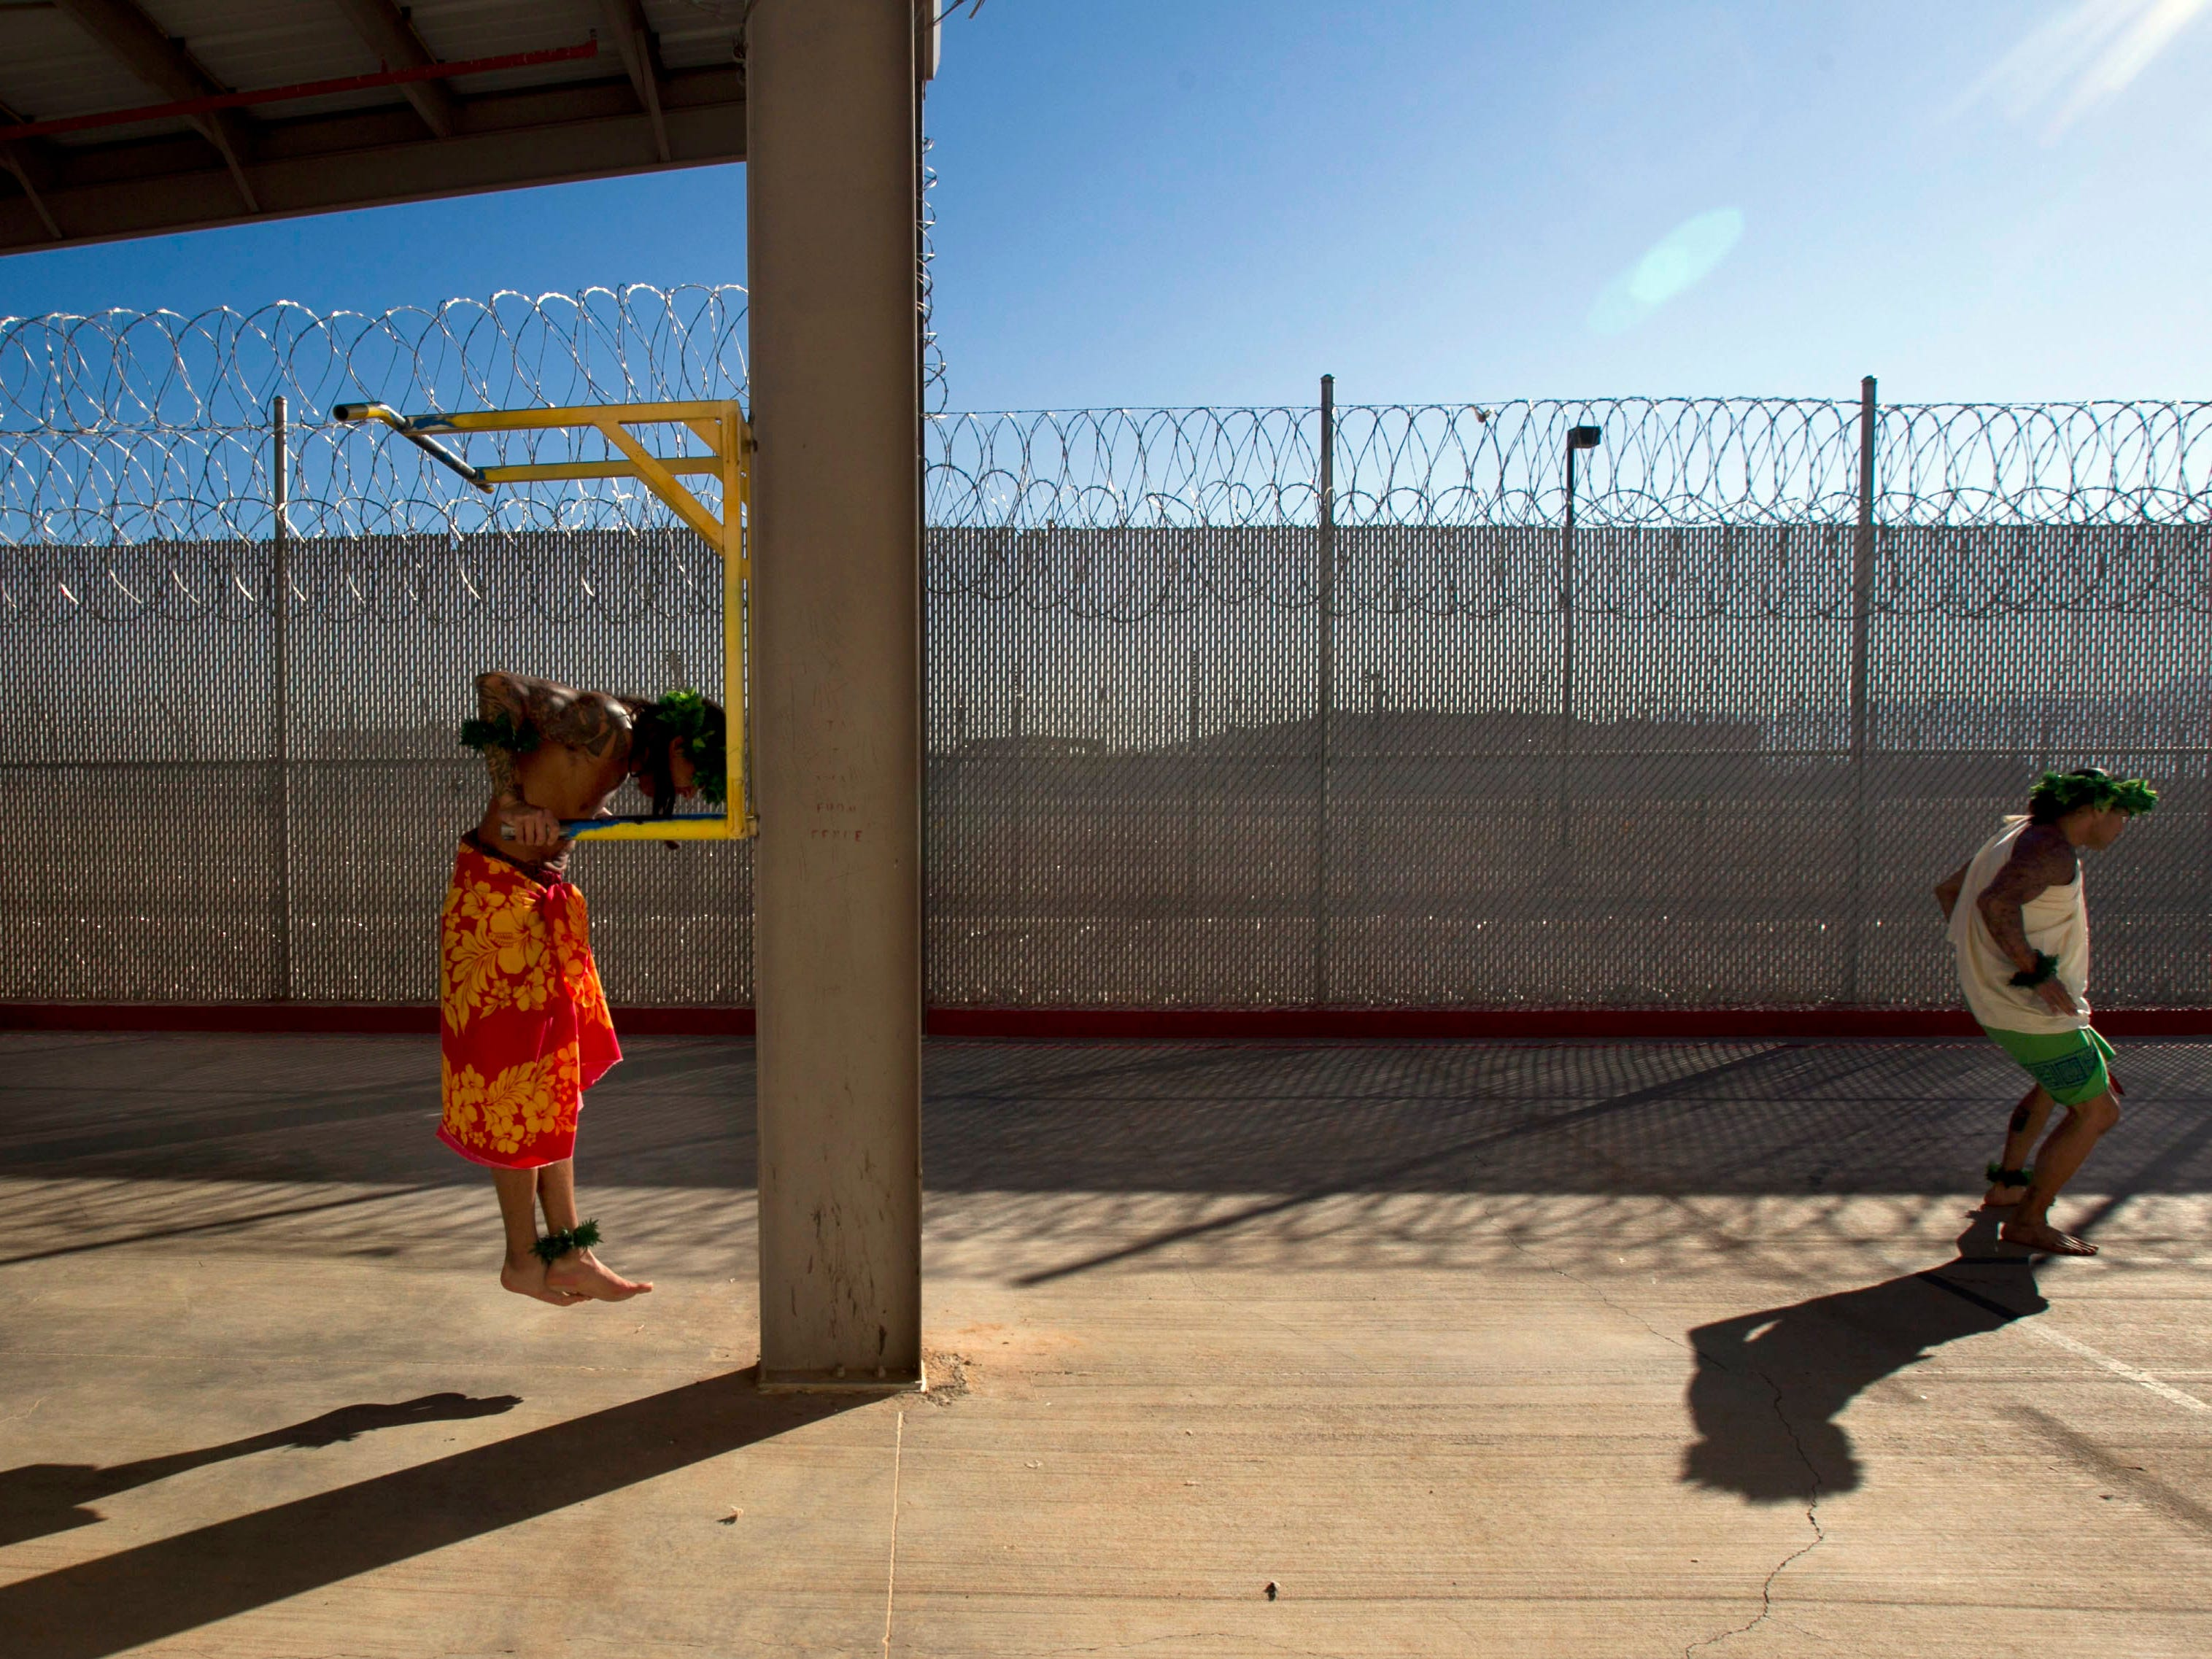 Some inmates from Hawaii exercise while others prepare for a ceremony at Saguaro Correctional Center in Eloy on Oct. 9, 2011. This facility houses inmates from Hawaii serving lengthy sentences.